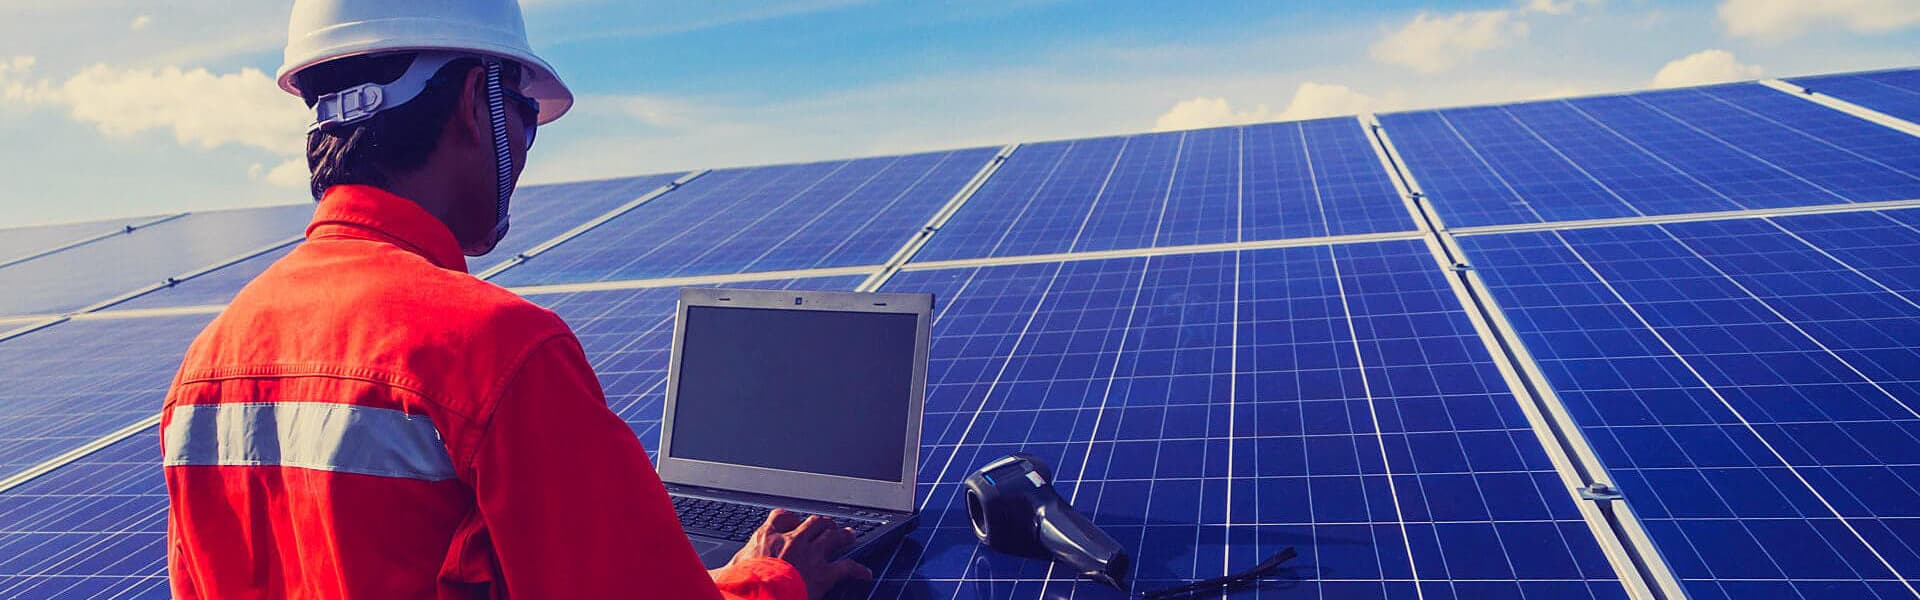 a person using laptop on the solar panel